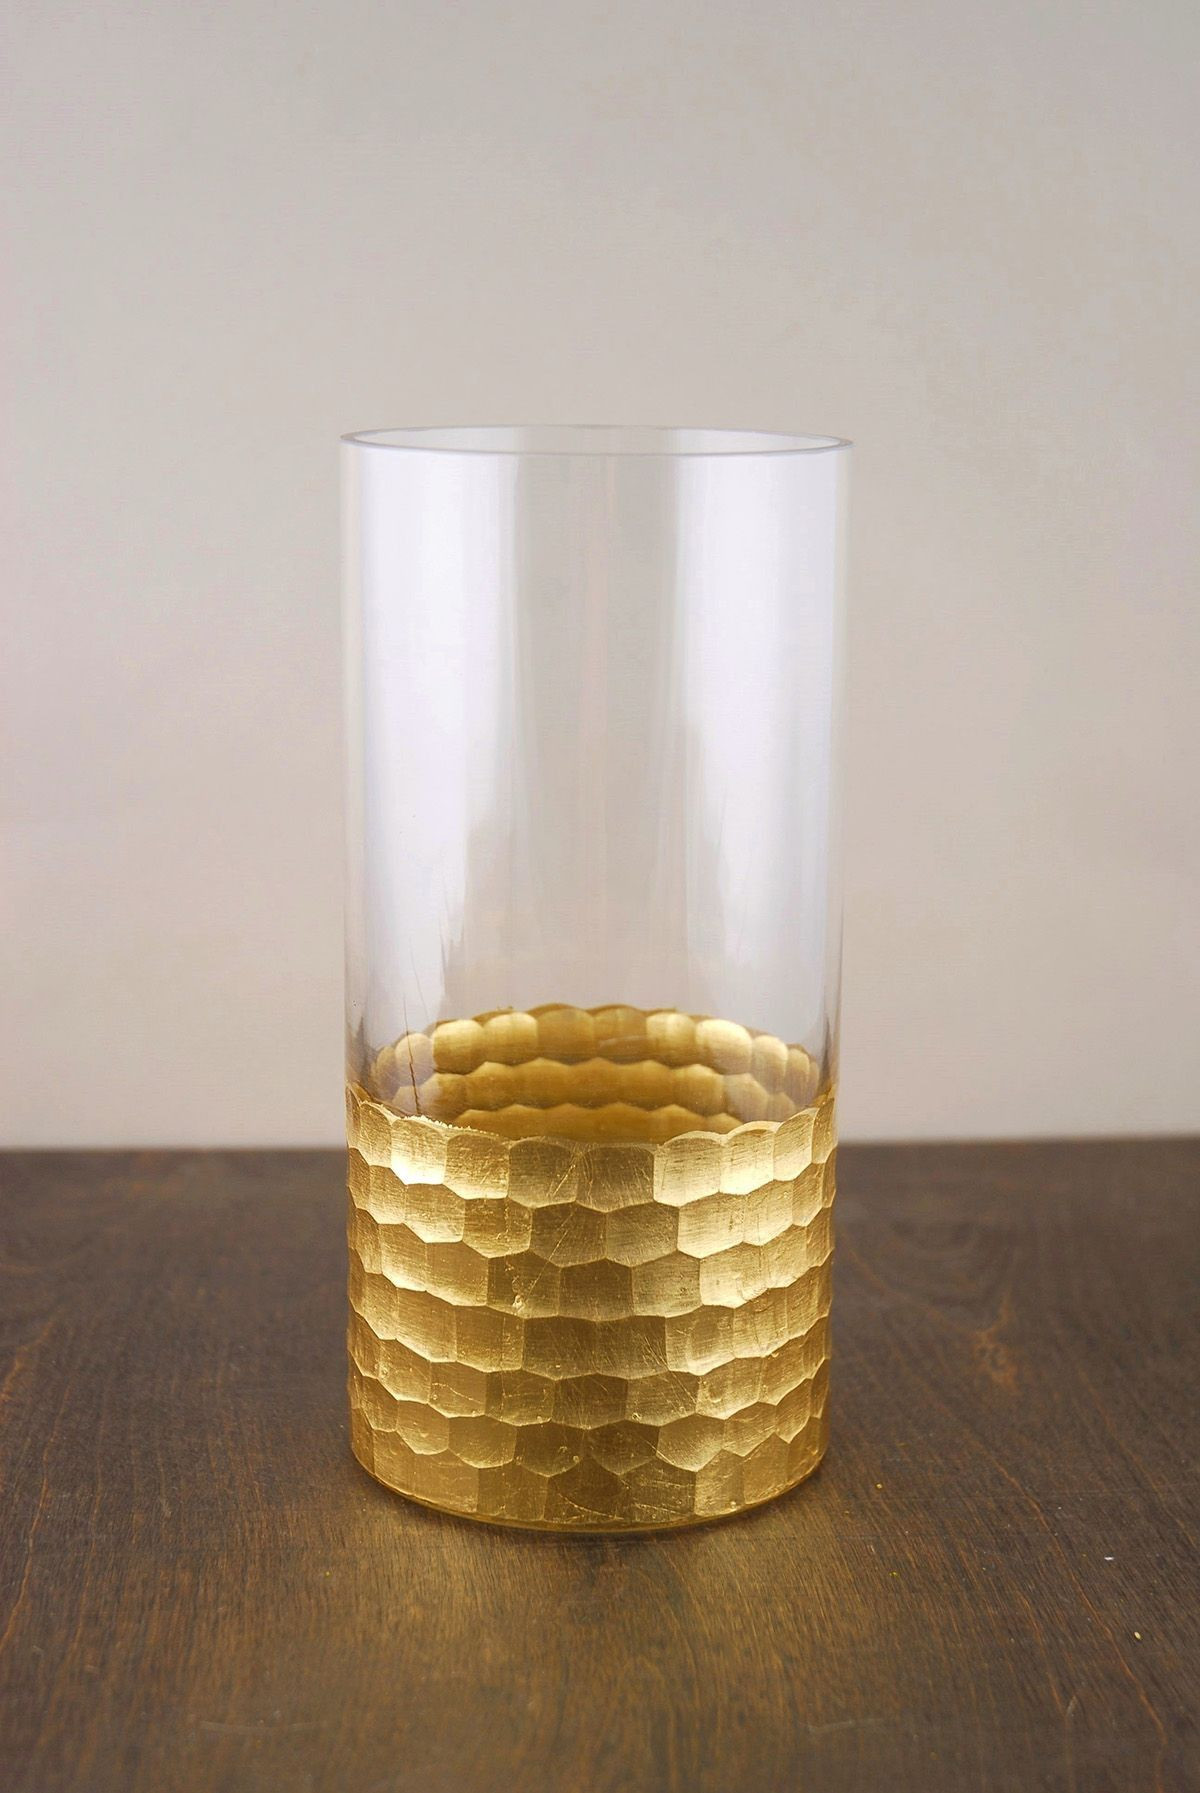 12 Fantastic Mercury Glass Vases wholesale 2021 free download mercury glass vases wholesale of gold mercury glass vases inspirational gold cylinder vases intended for gold mercury glass vases inspirational gold cylinder vases collection silver and gold